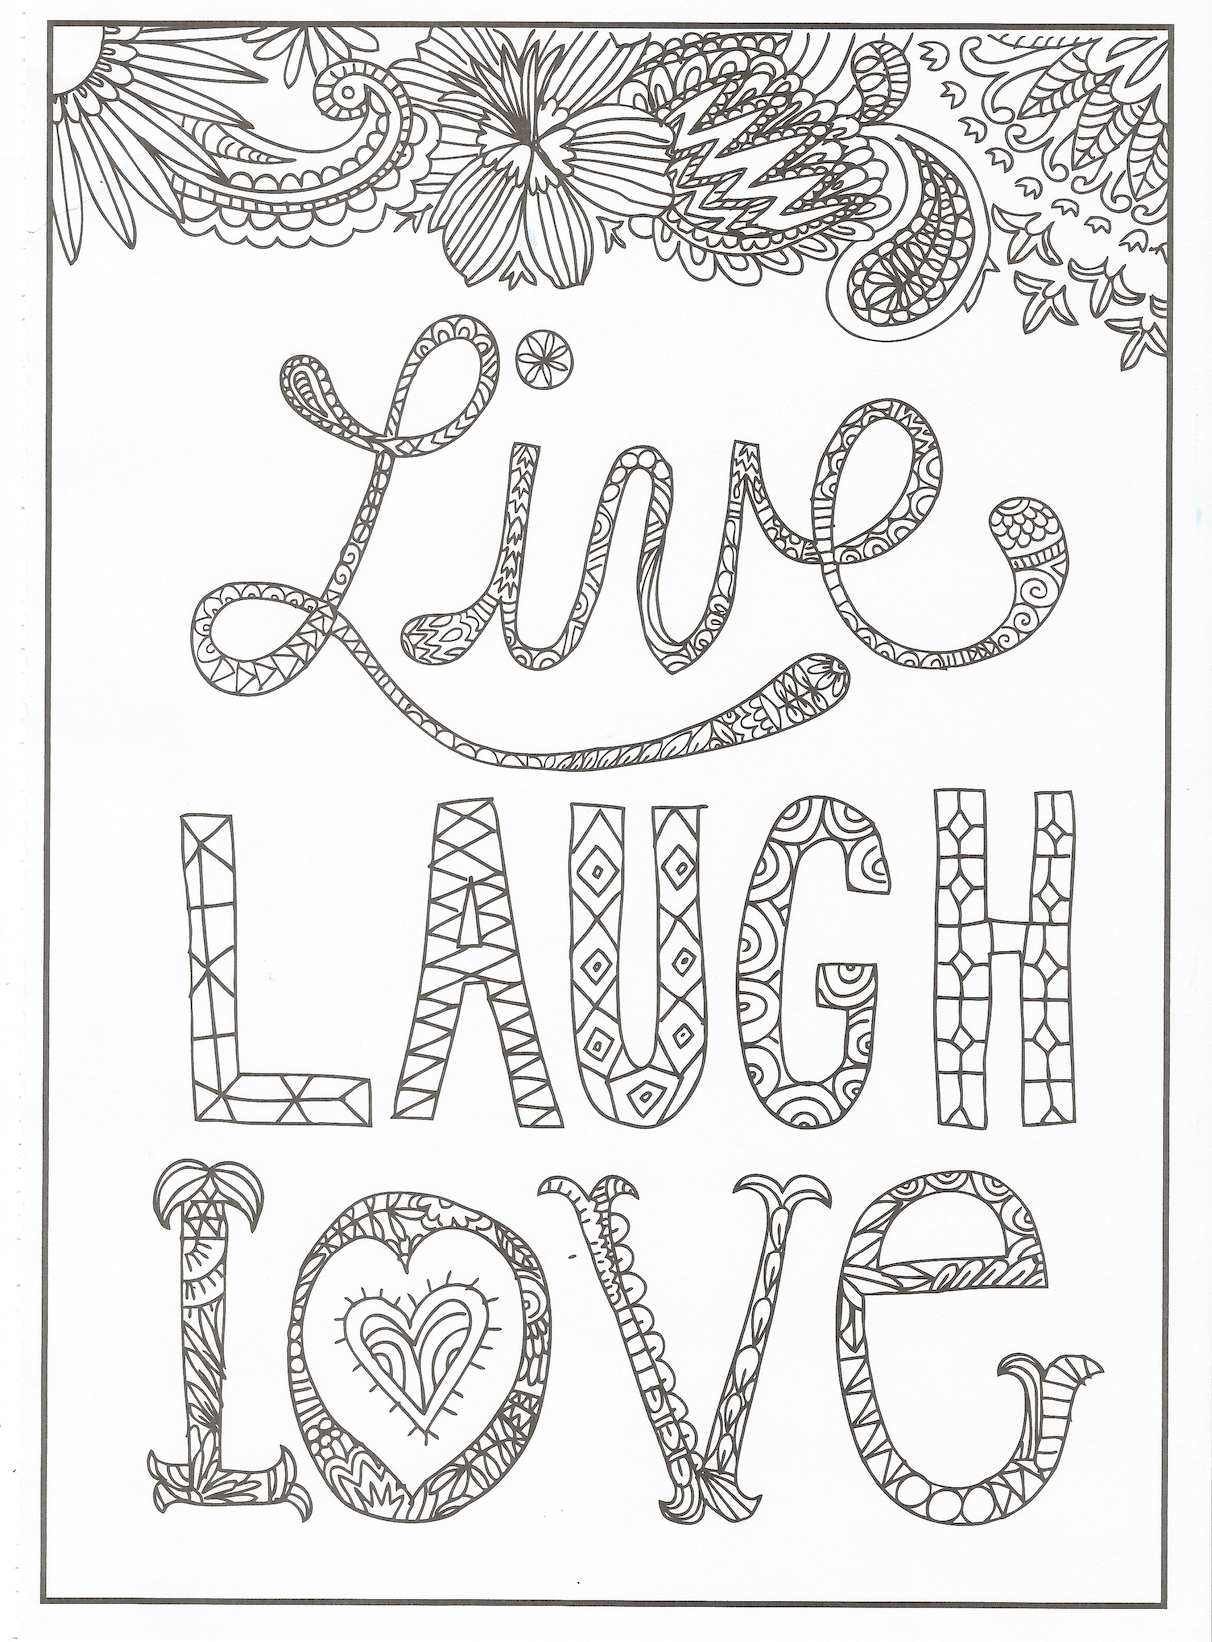 Timeless Creations Creative Quotes Coloring Page Live Laugh Love Quote Coloring Pages Love Coloring Pages Coloring Pages